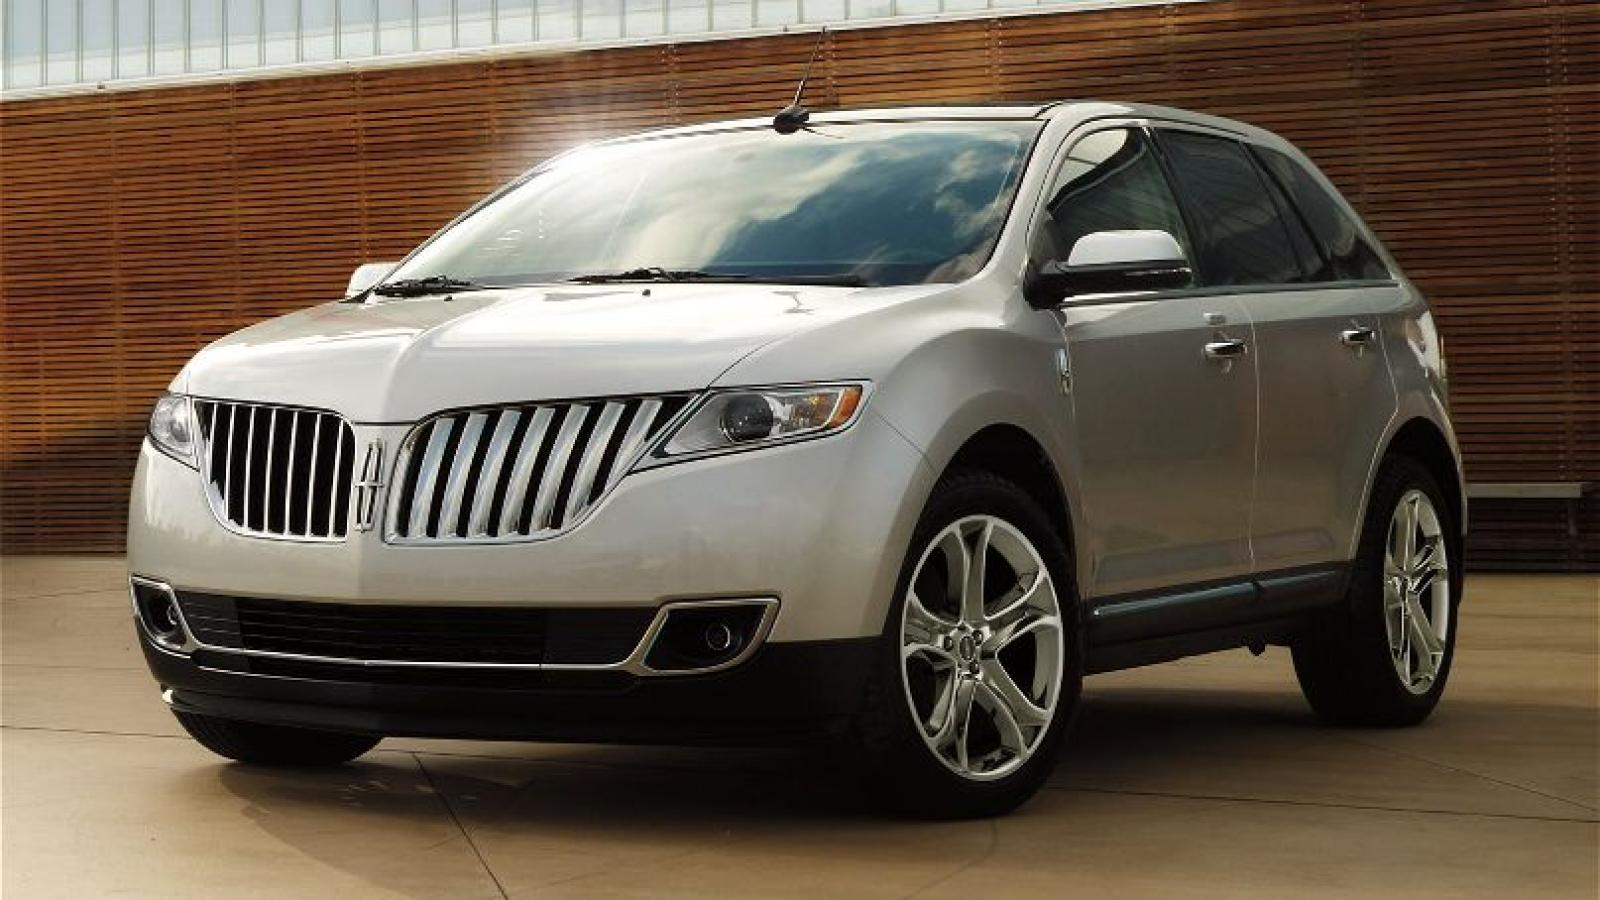 2015 lincoln mkx information and photos zombiedrive. Black Bedroom Furniture Sets. Home Design Ideas